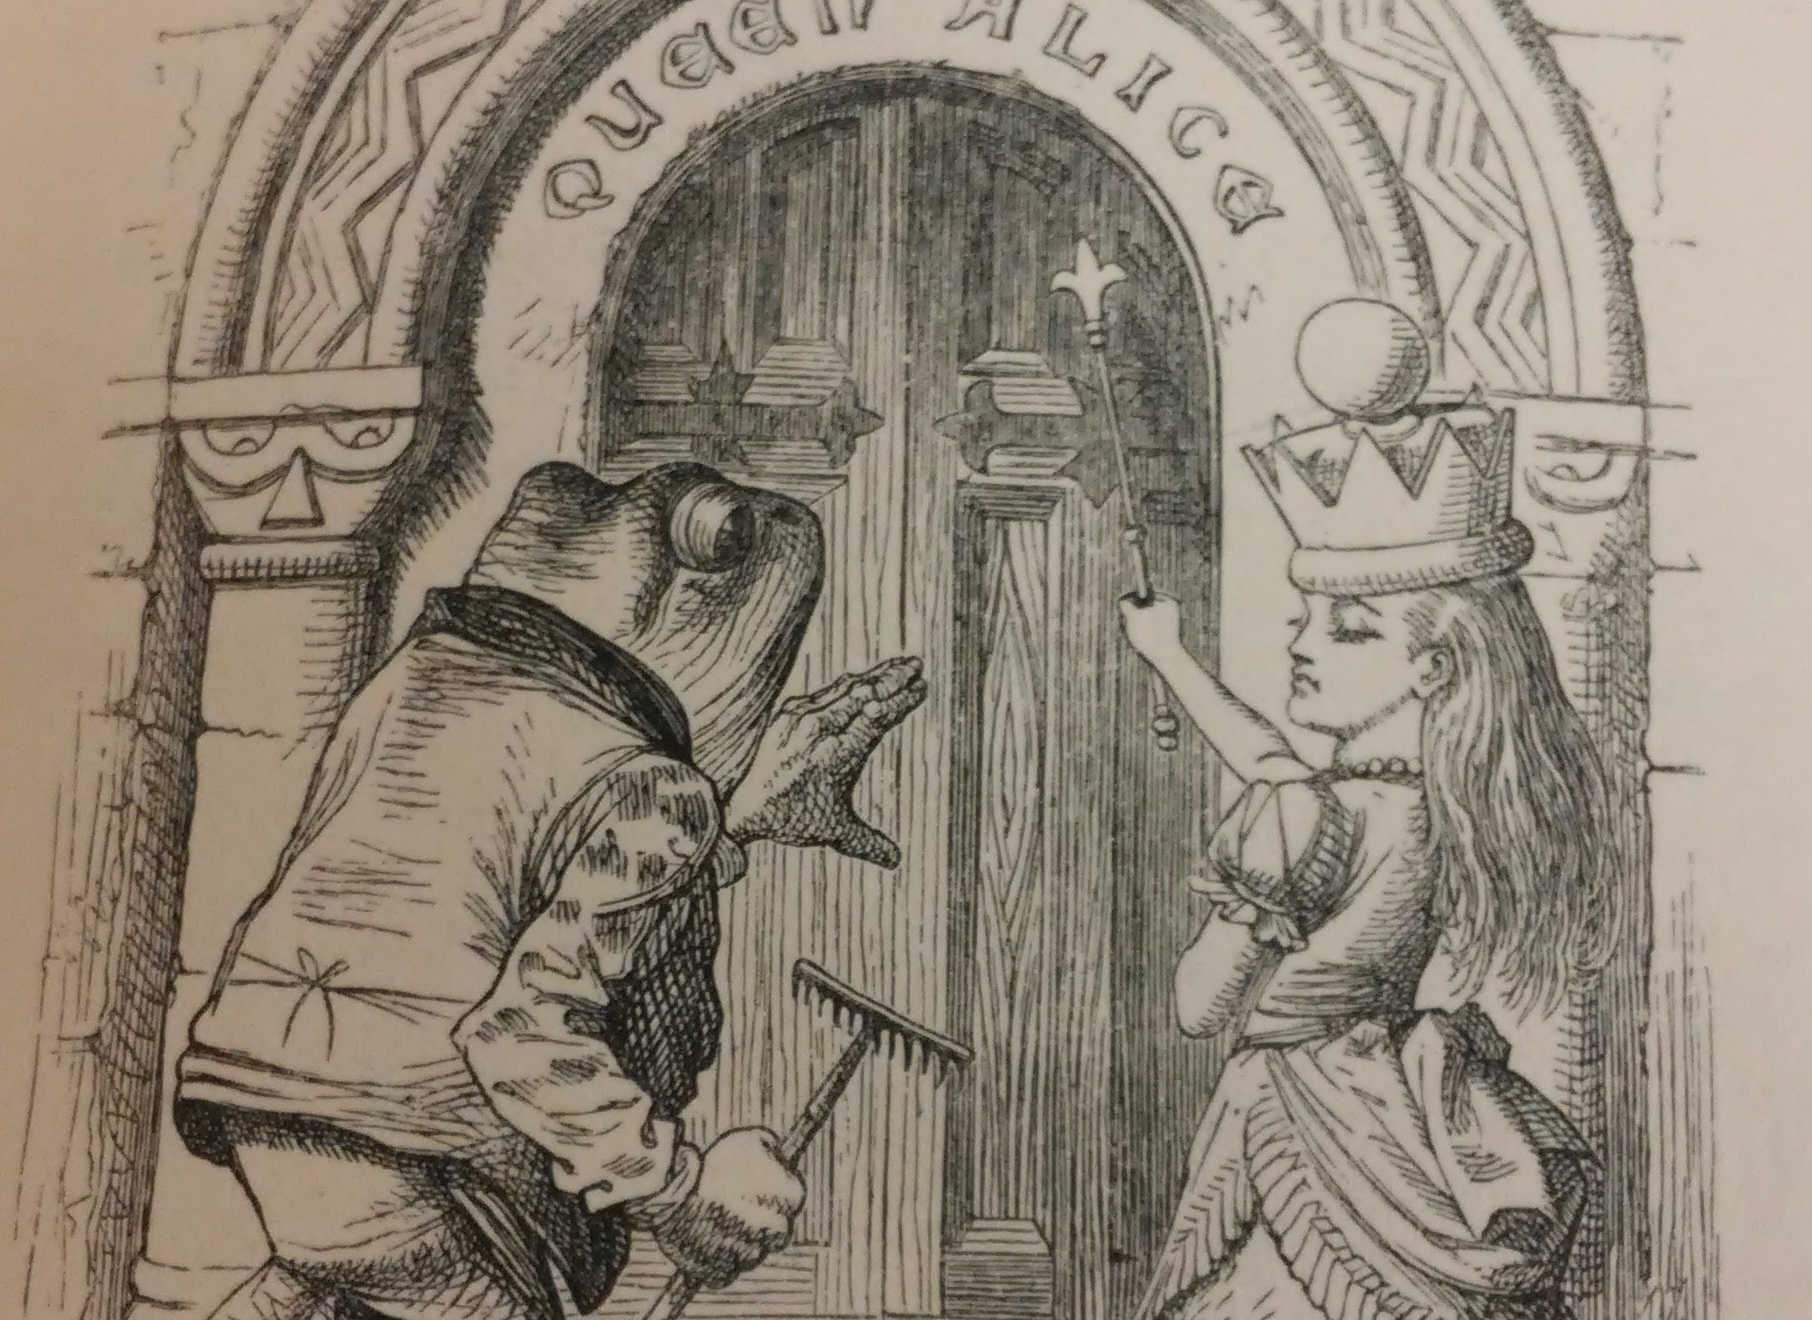 """Queen Alice"" from the first edition of Through the Looking Glass, from the Milner Library Special Collections."